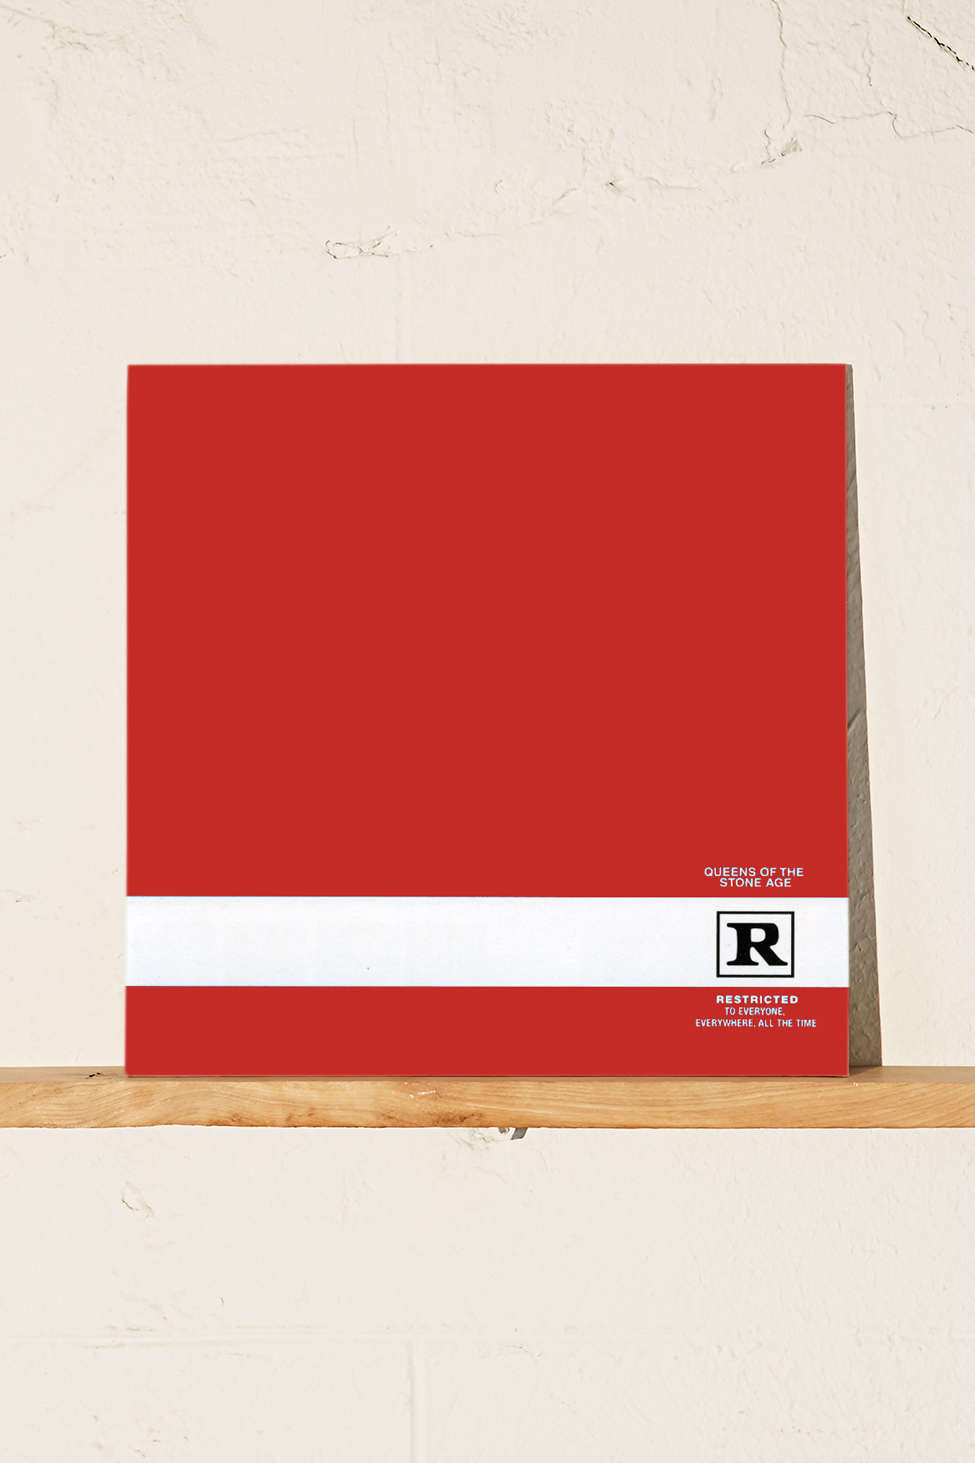 Queens Of The Stone Age - Rated R LP - Urban Outfitters